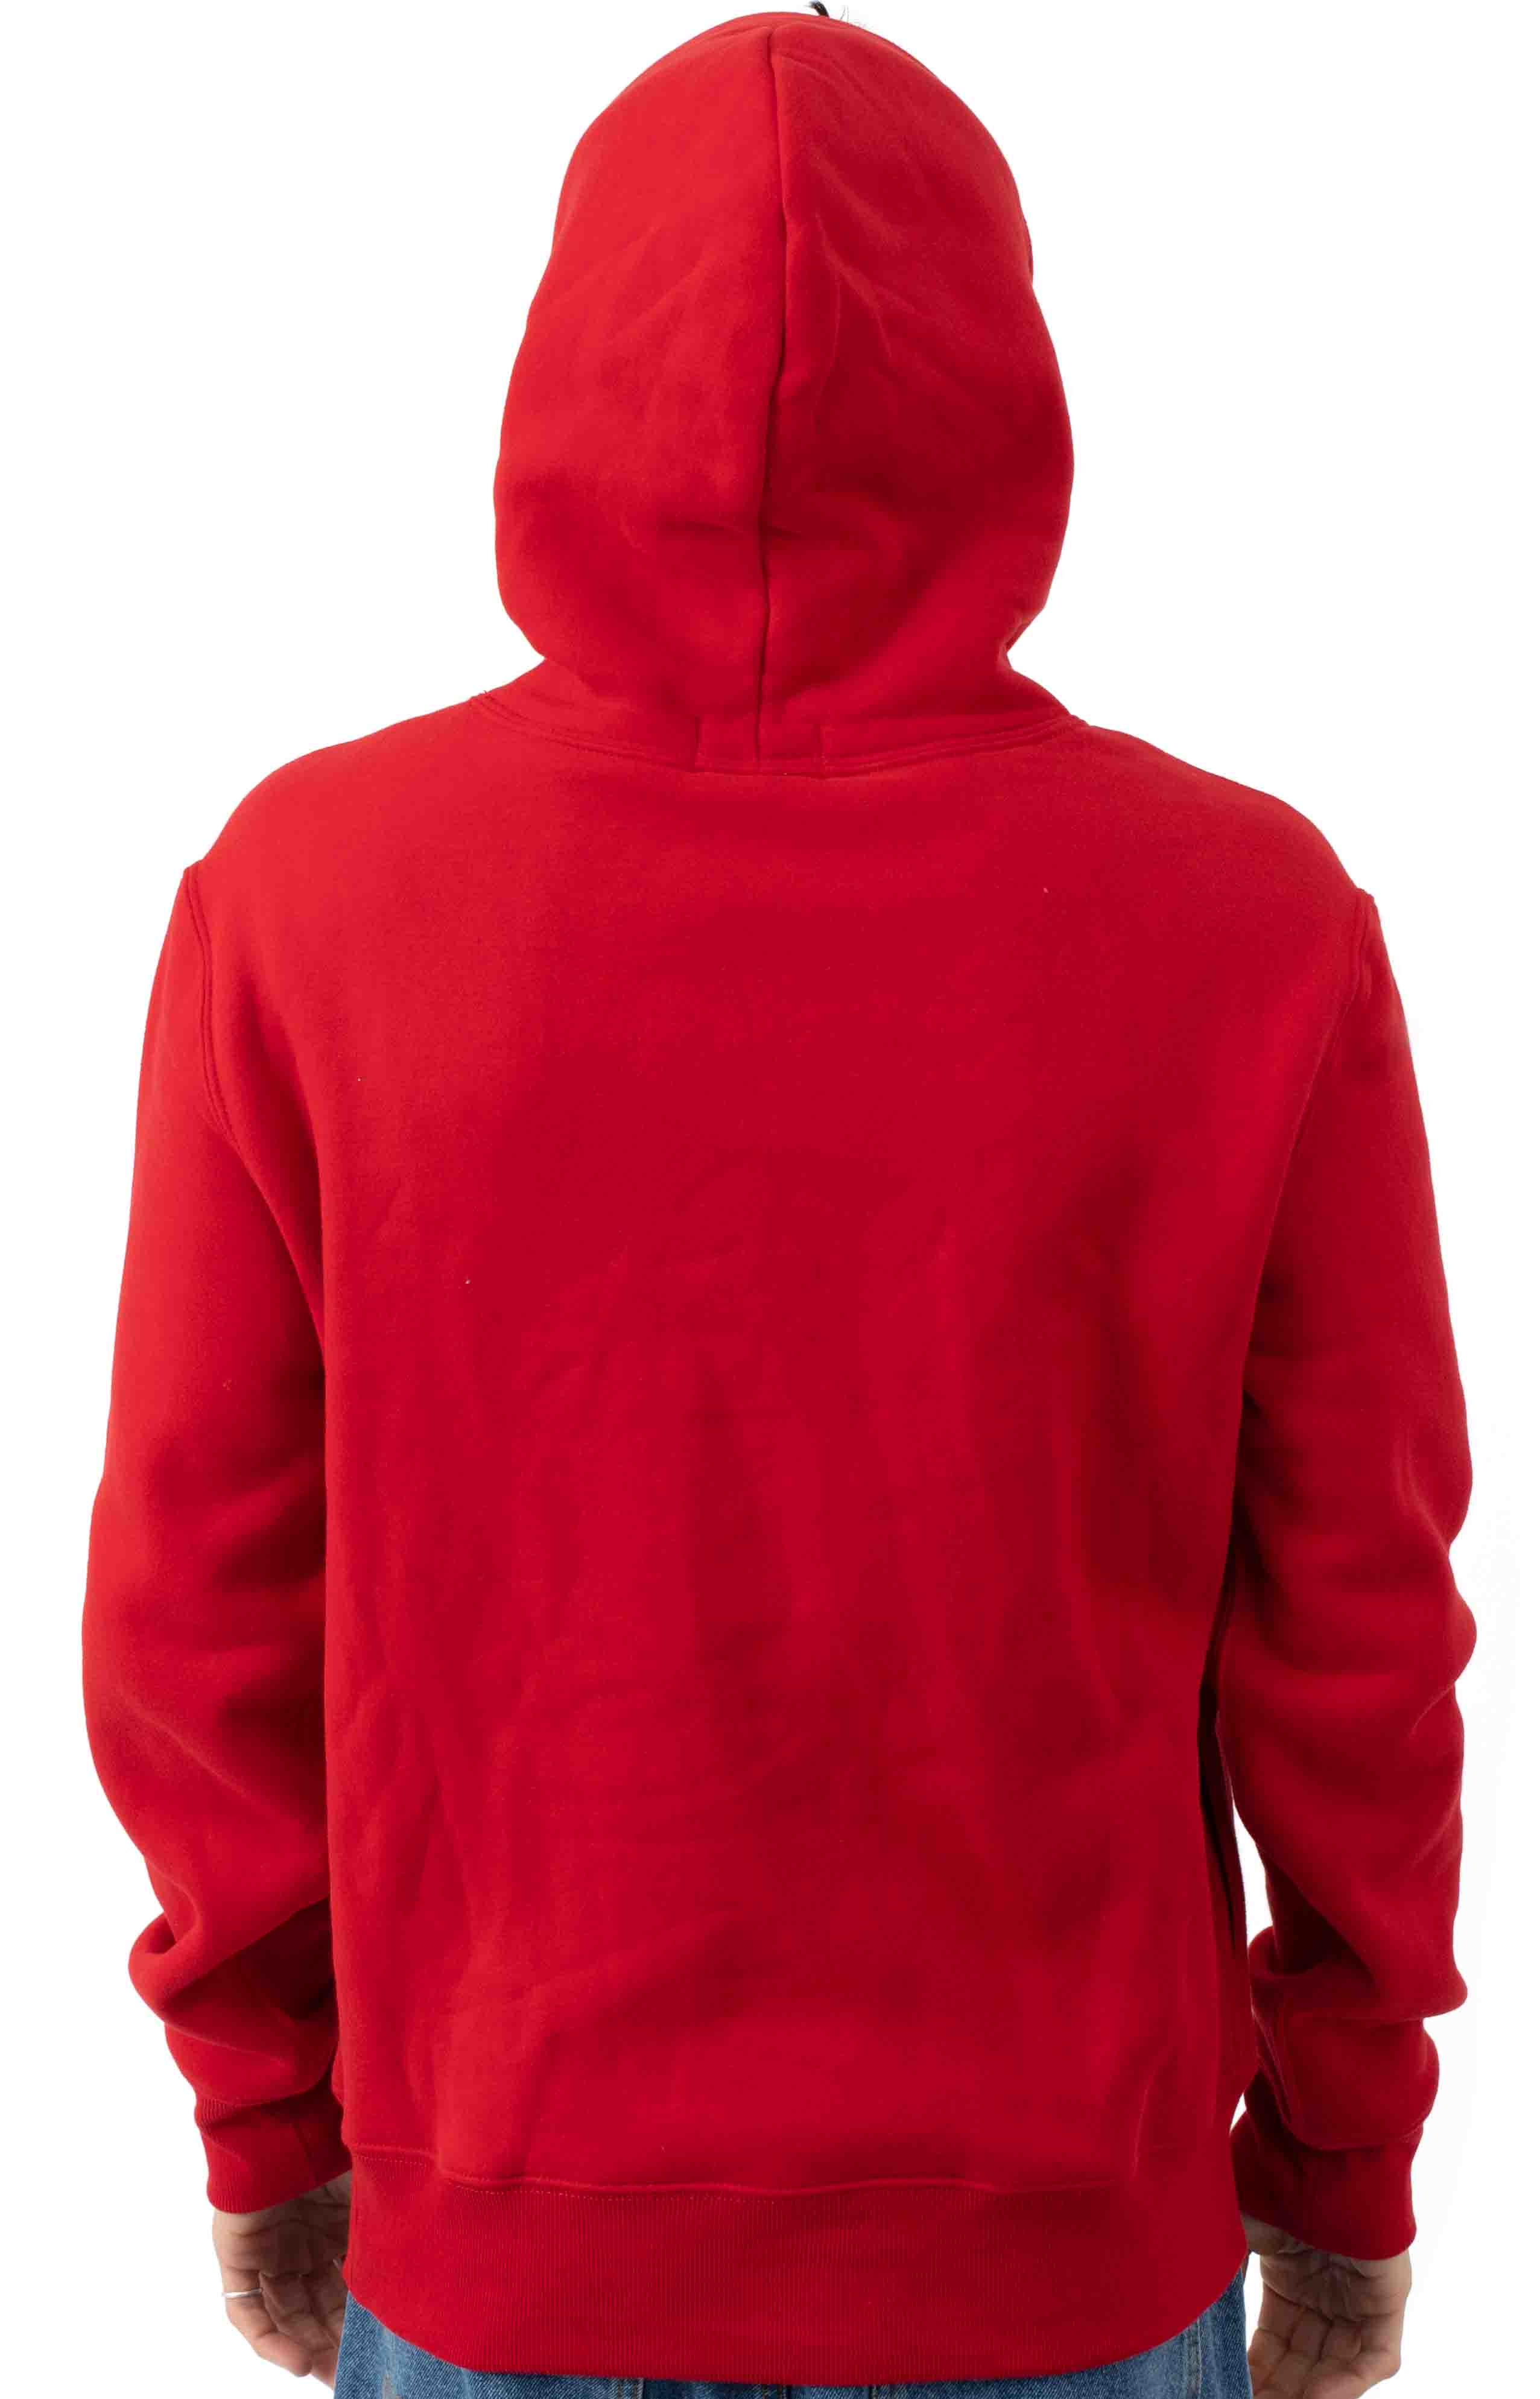 Polo Bear Racing Jacket Pullover Hoodie - Red 3